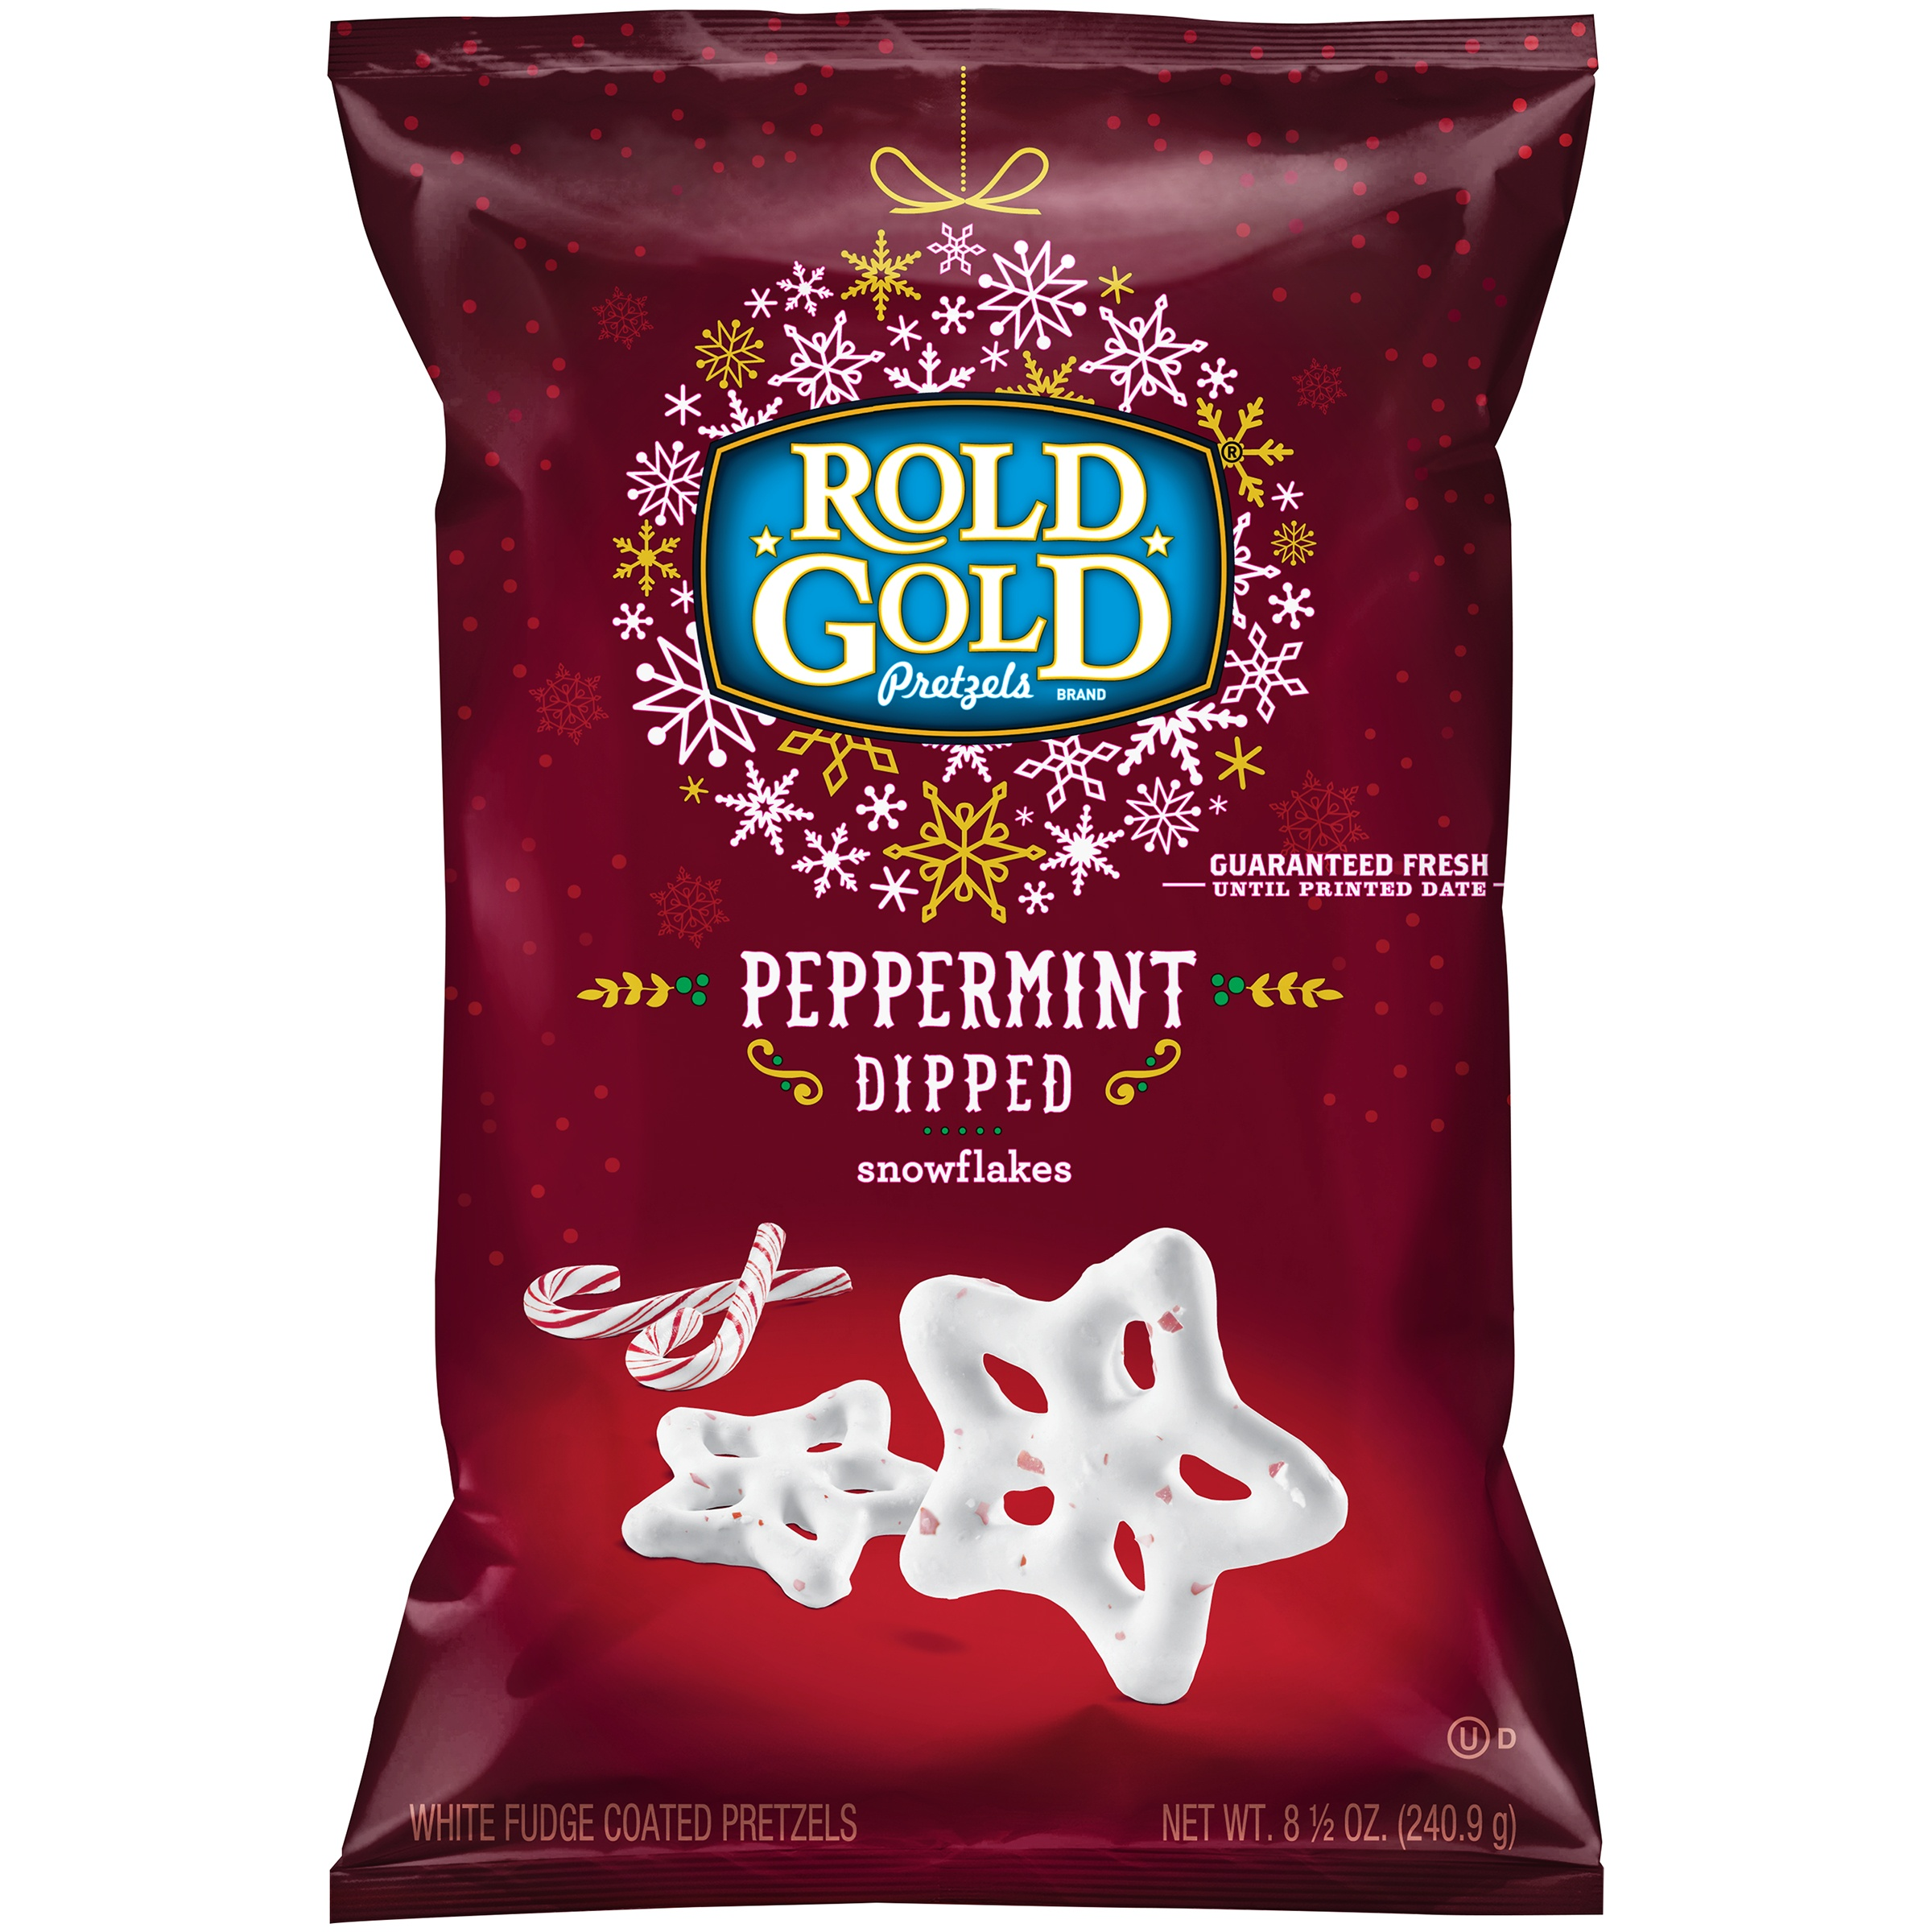 Rold Gold Peppermint Dipped Snowflakes Pretzels 8.5 oz. Bag